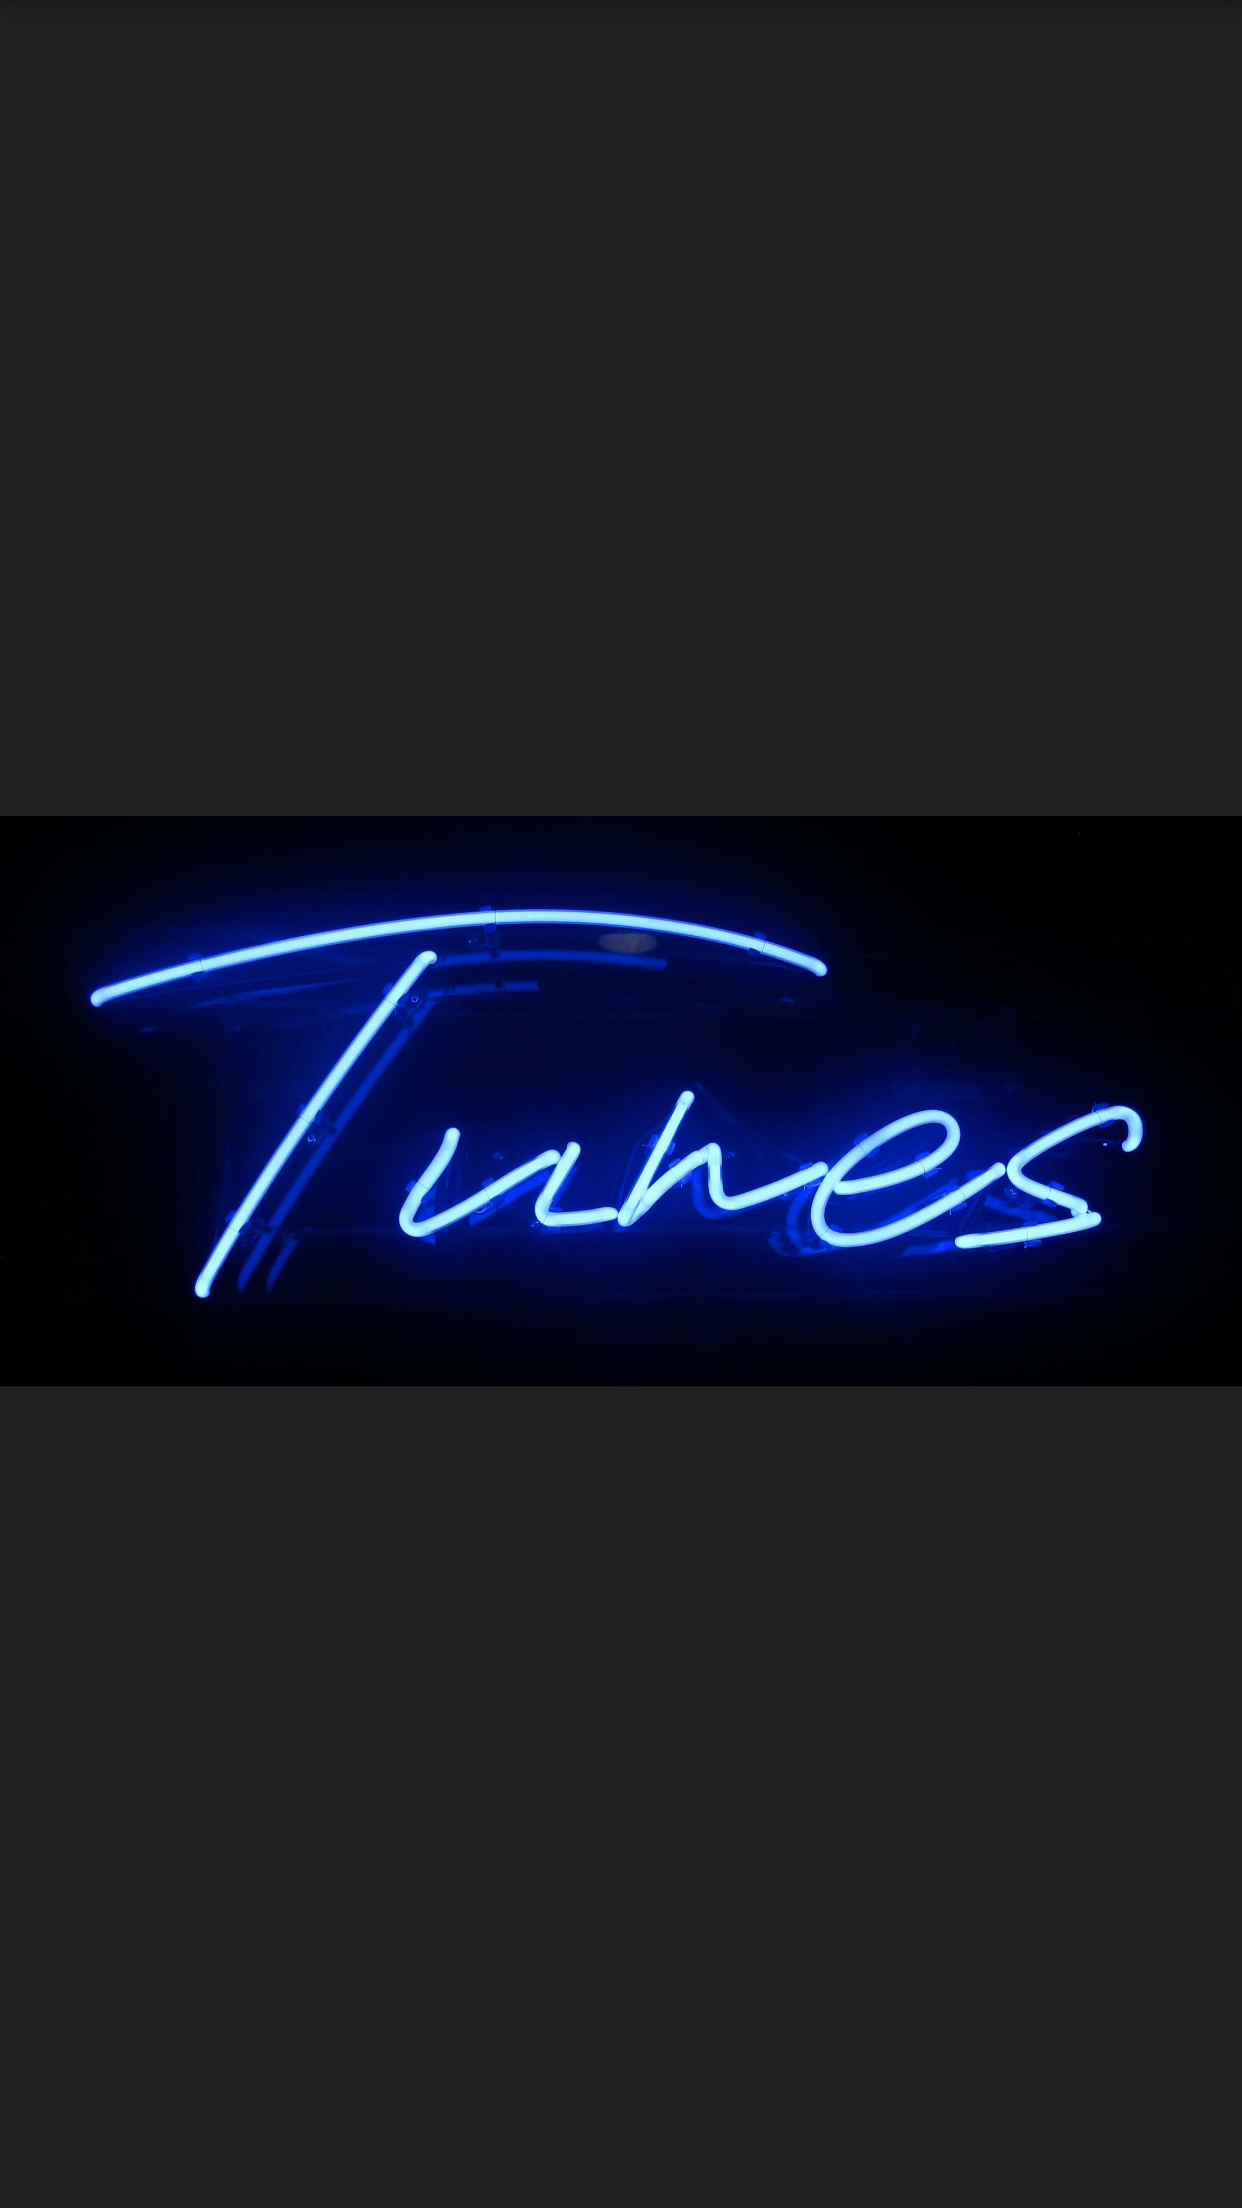 Tunes Neon Sign - 1m long x 300mm wide